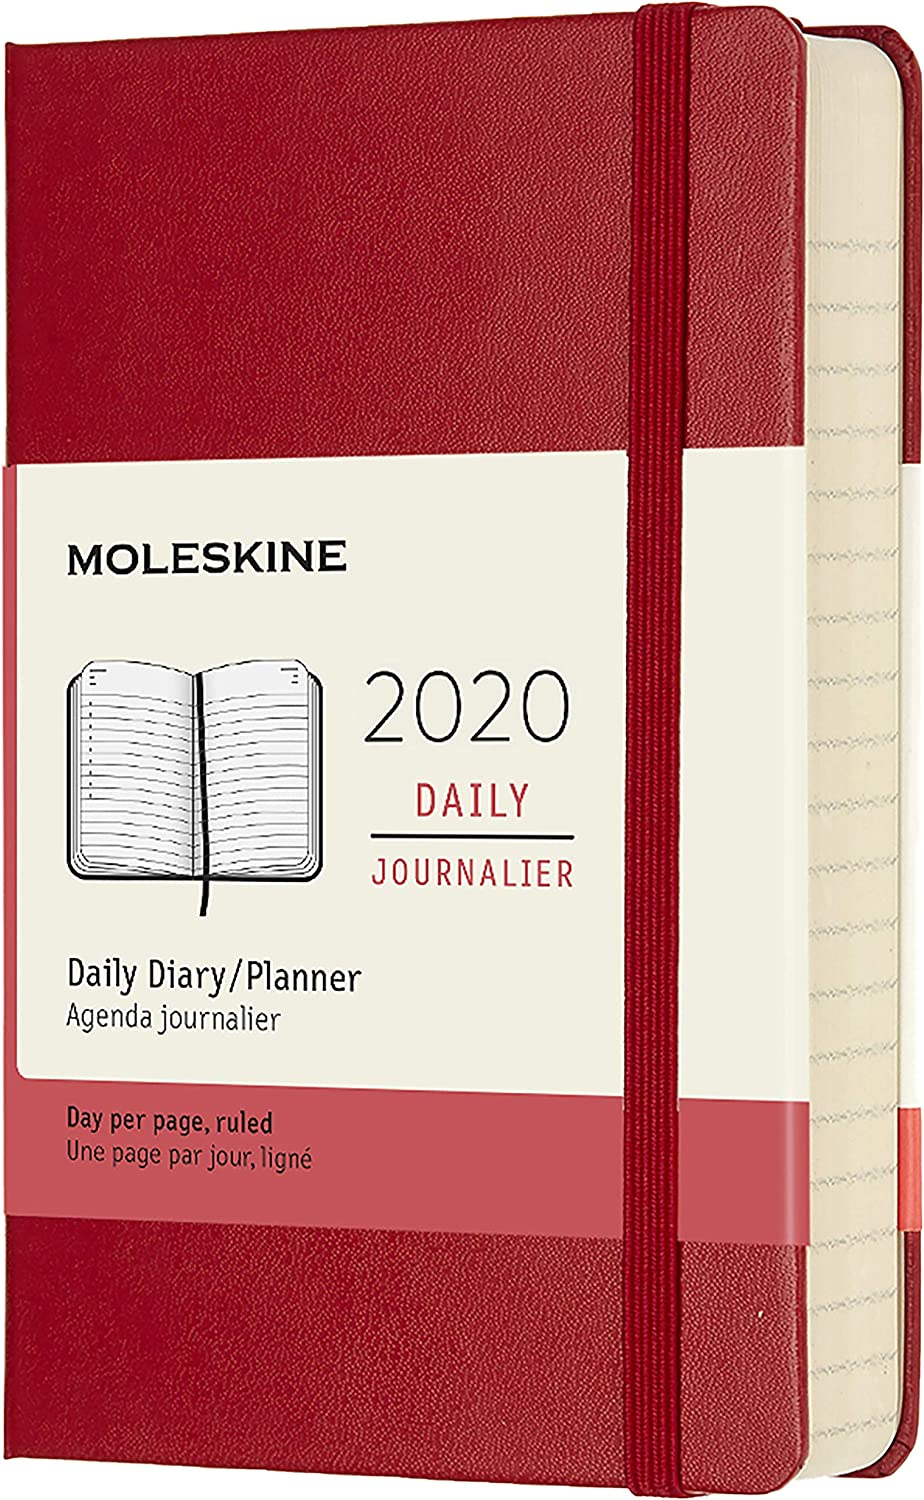 """Moleskine Classic 12 Month 2020 Daily Planner, Hard Cover, Pocket (3.5"""" x 5.5"""") Scarlet Red"""